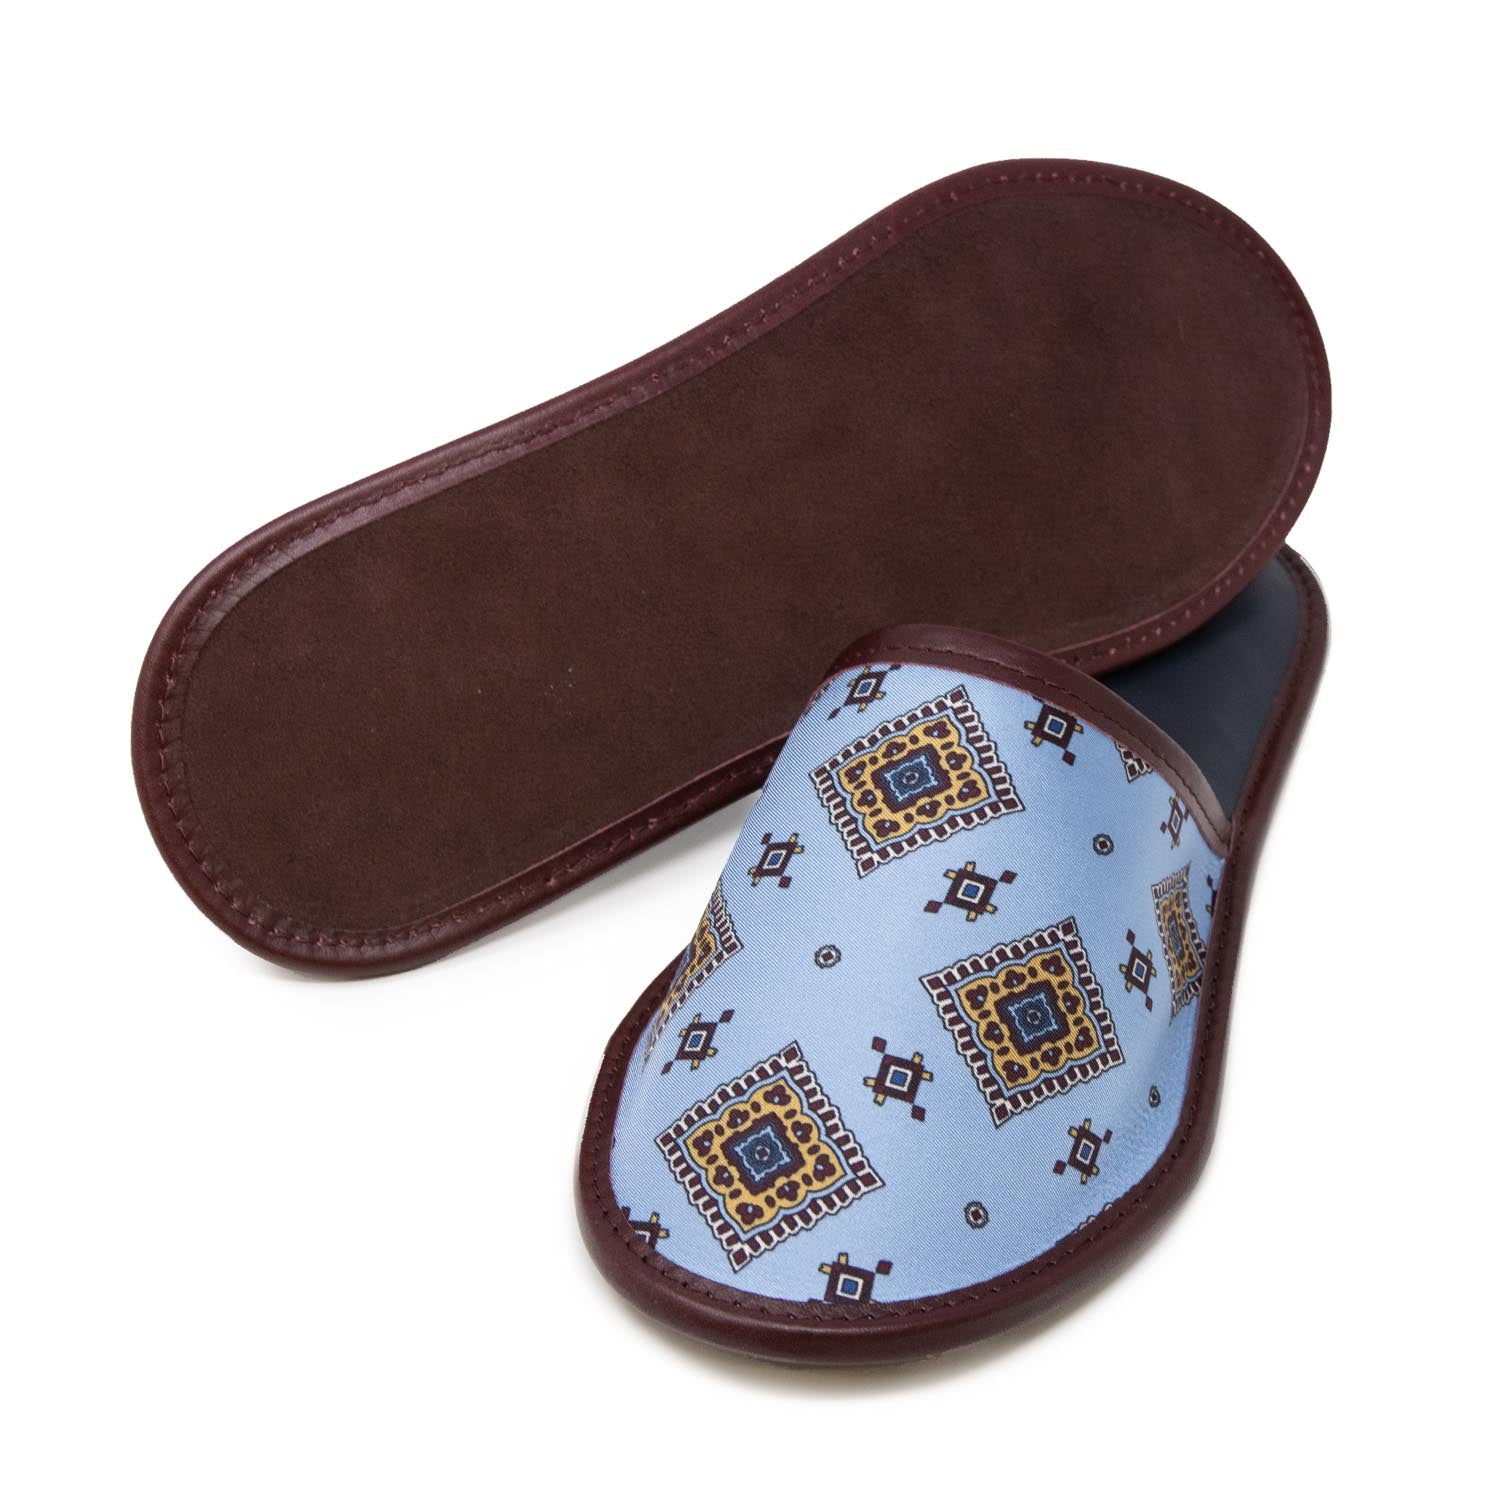 serà fine silk - Light Blue and Burgundy with Medallions Silk & Leather Slippers